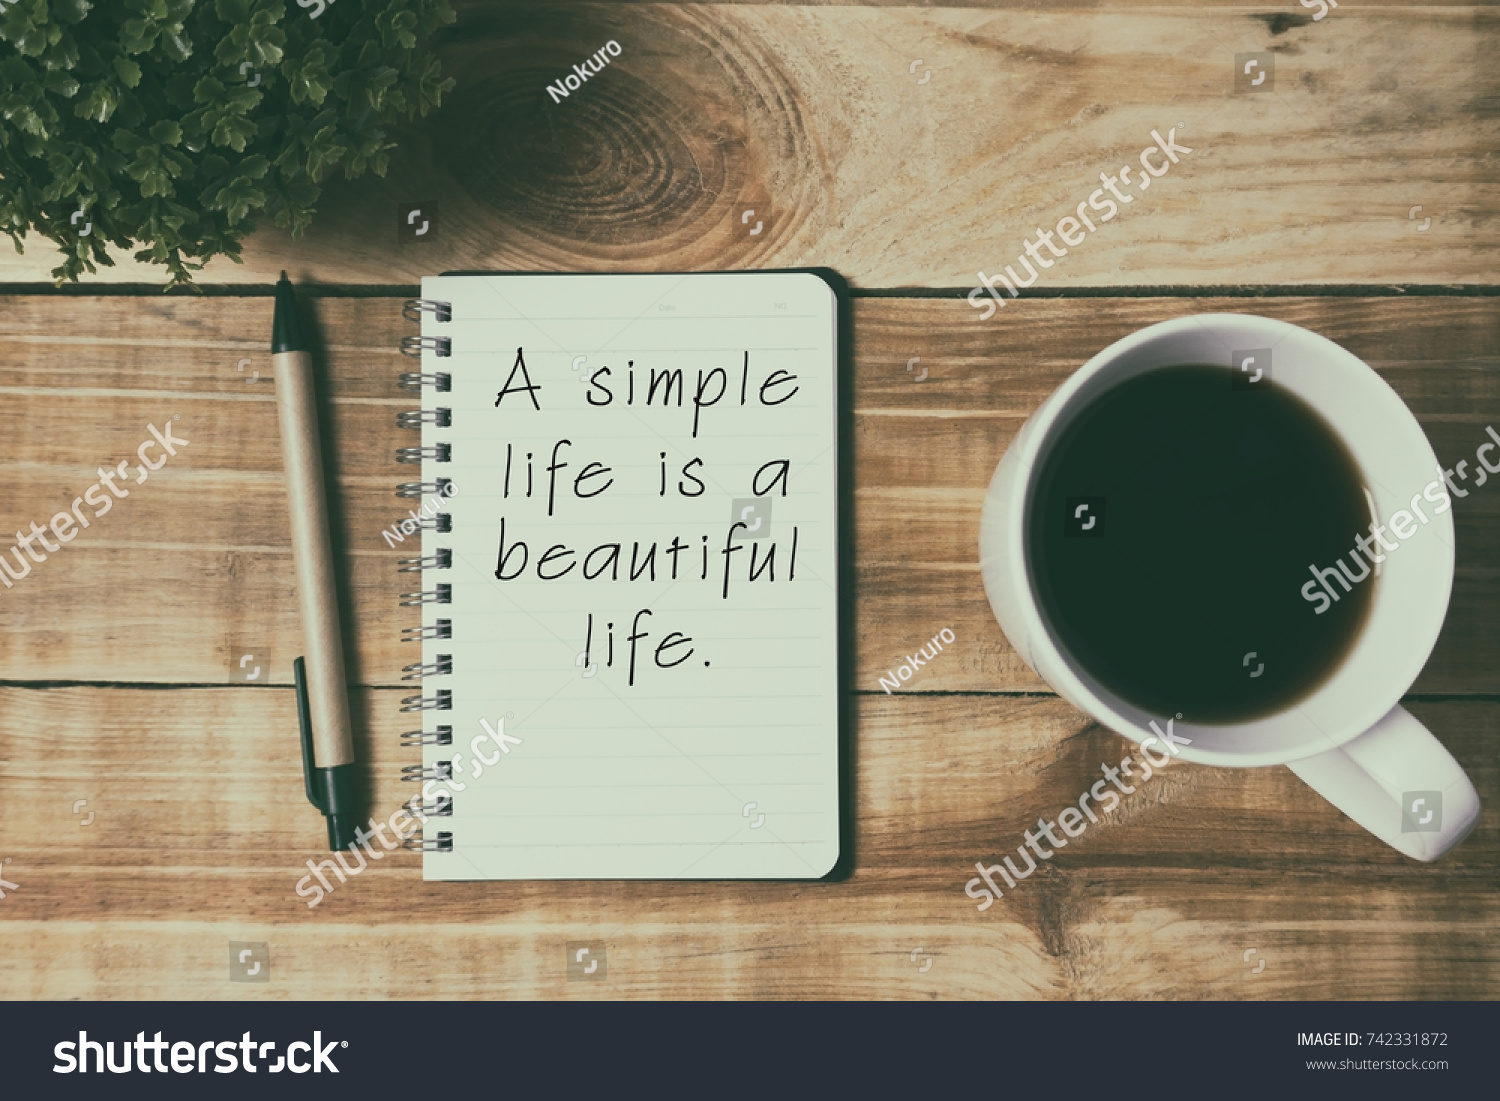 Life Inspirational Quotes   A Simple Life Is A Beautiful Life. Retro Style  Background.